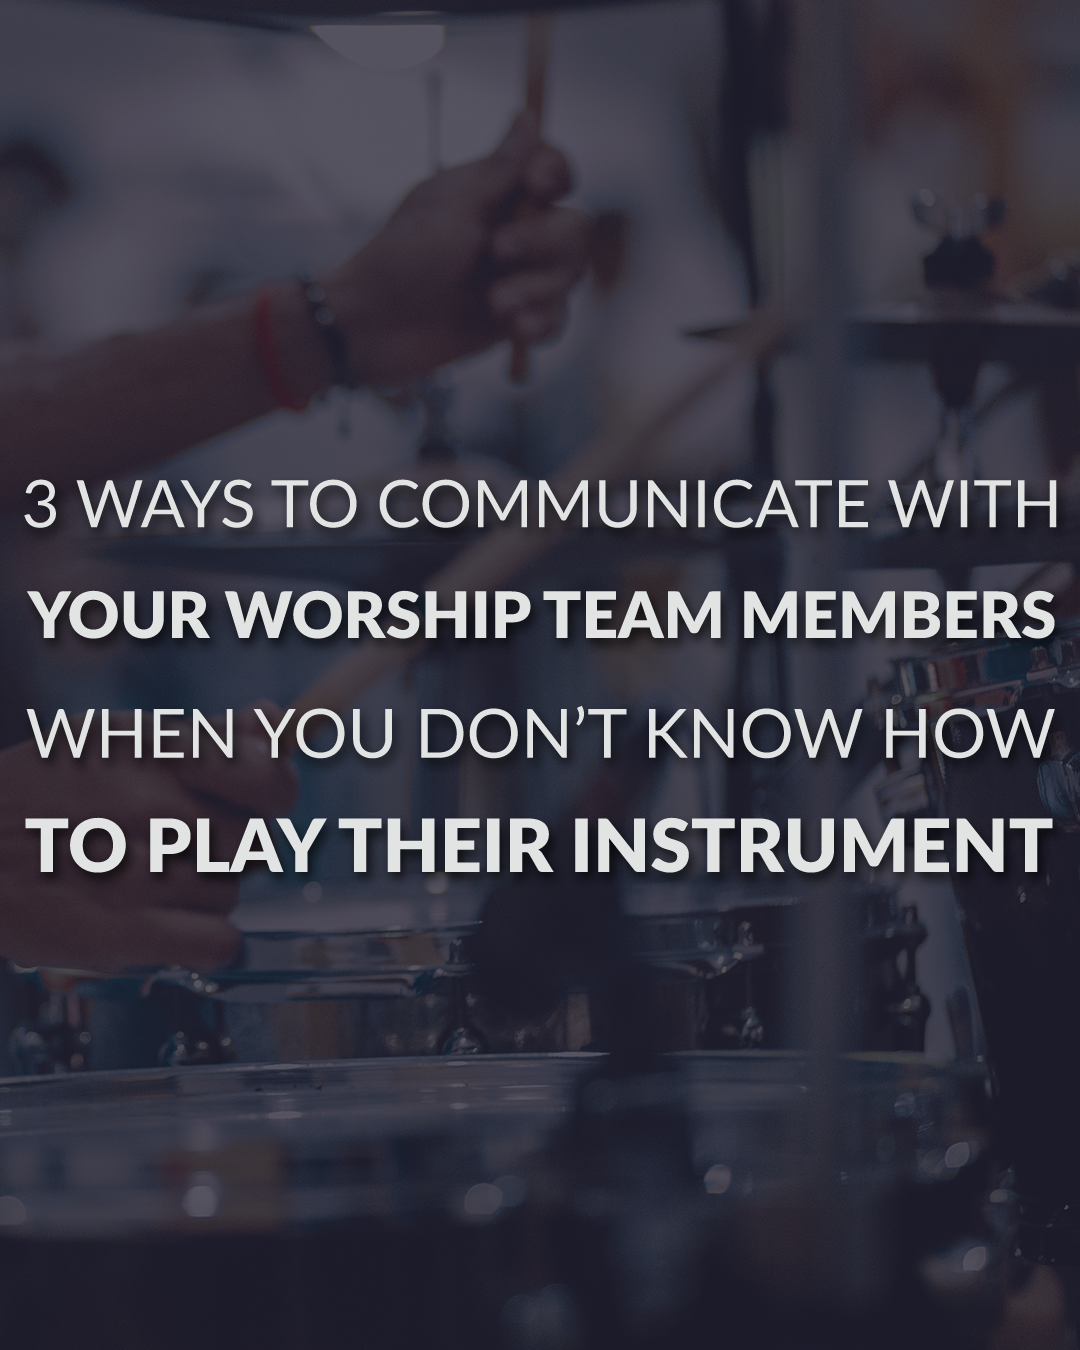 3 Ways To Communicate With Your Worship Team Members When You Don't Know How To Play Their Instrument